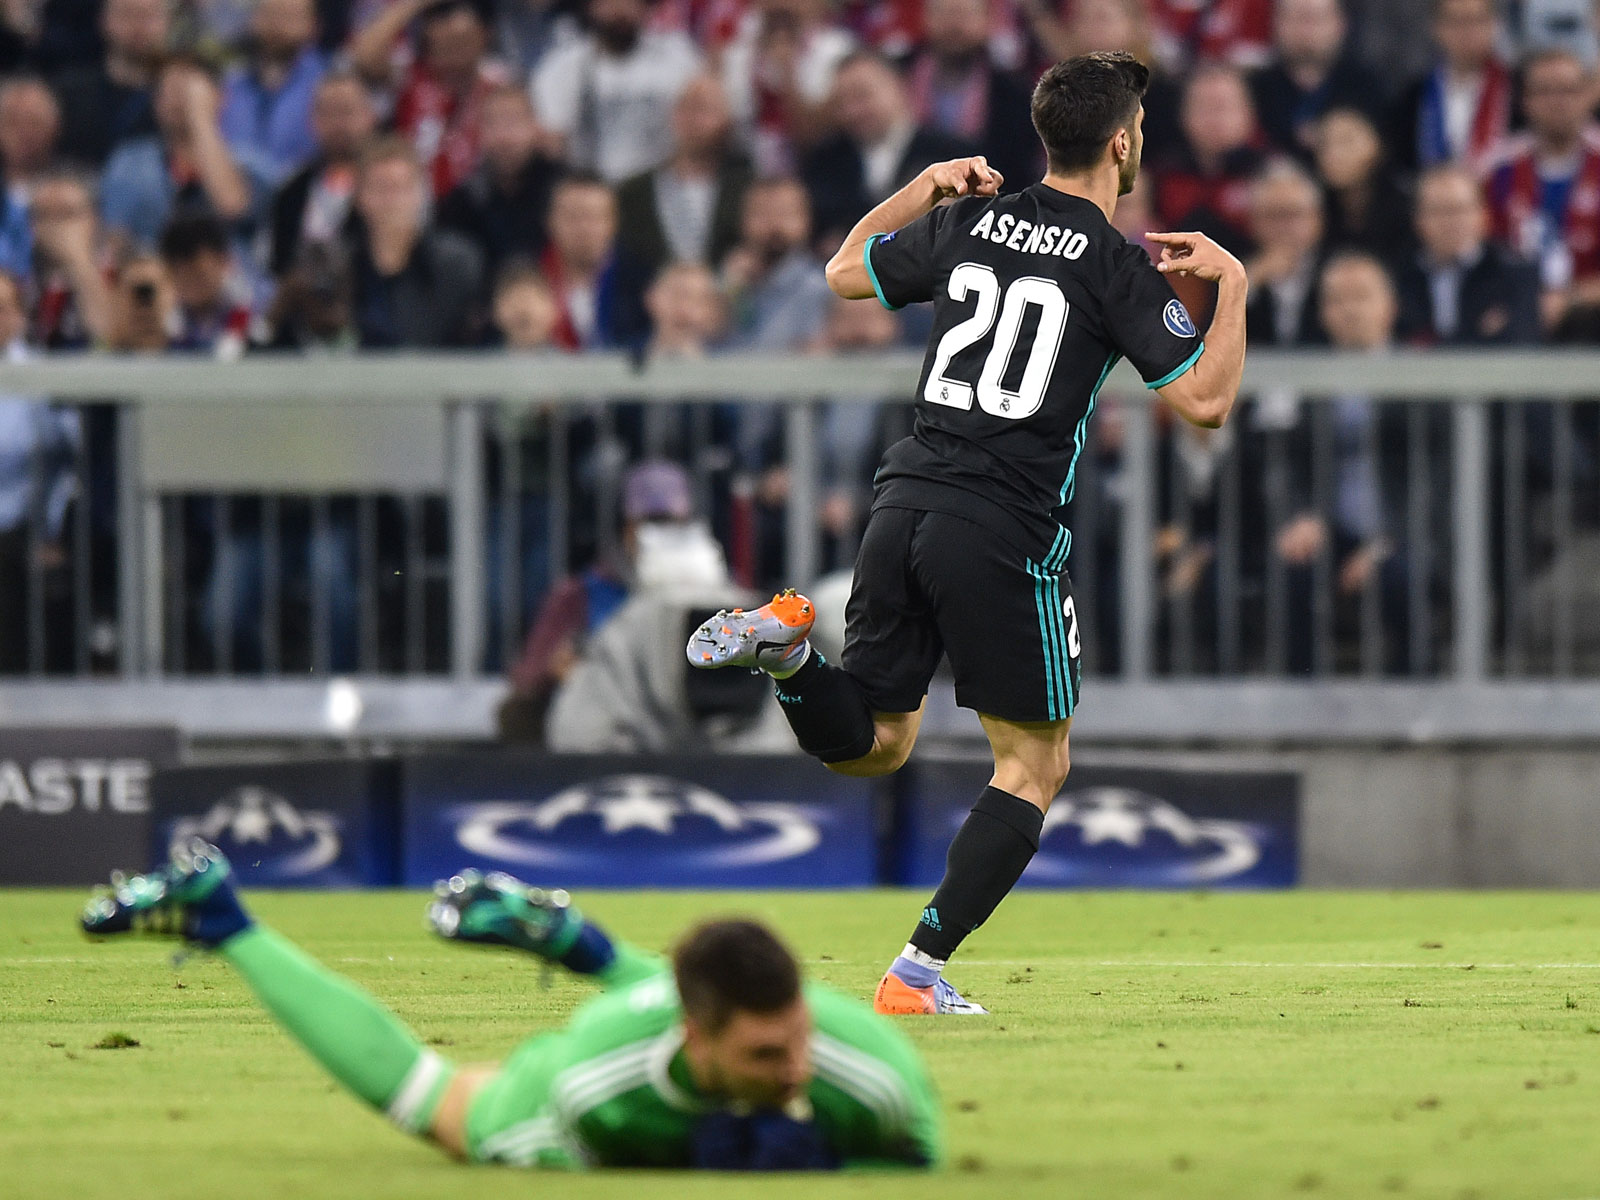 Marco Asensio scores for Real Madrid vs. Bayern Munich